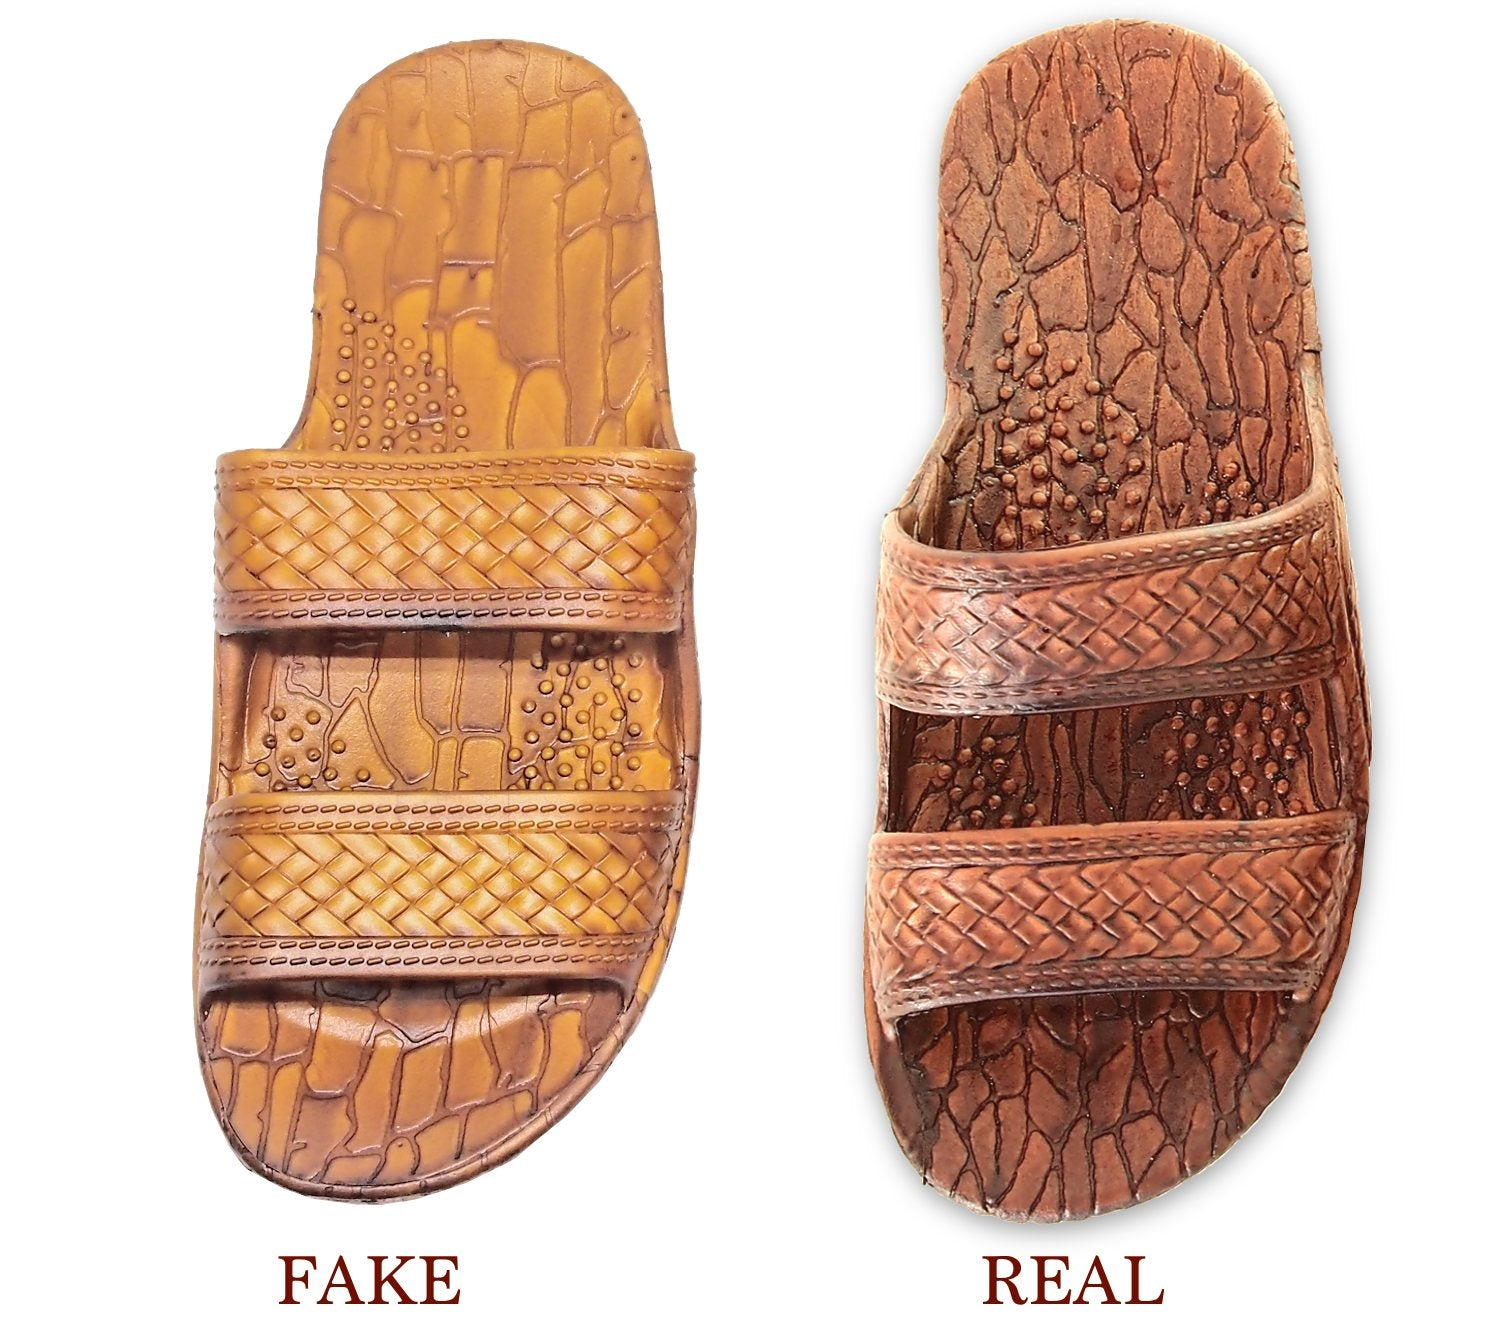 Pali Hawaii - Fake vs Real